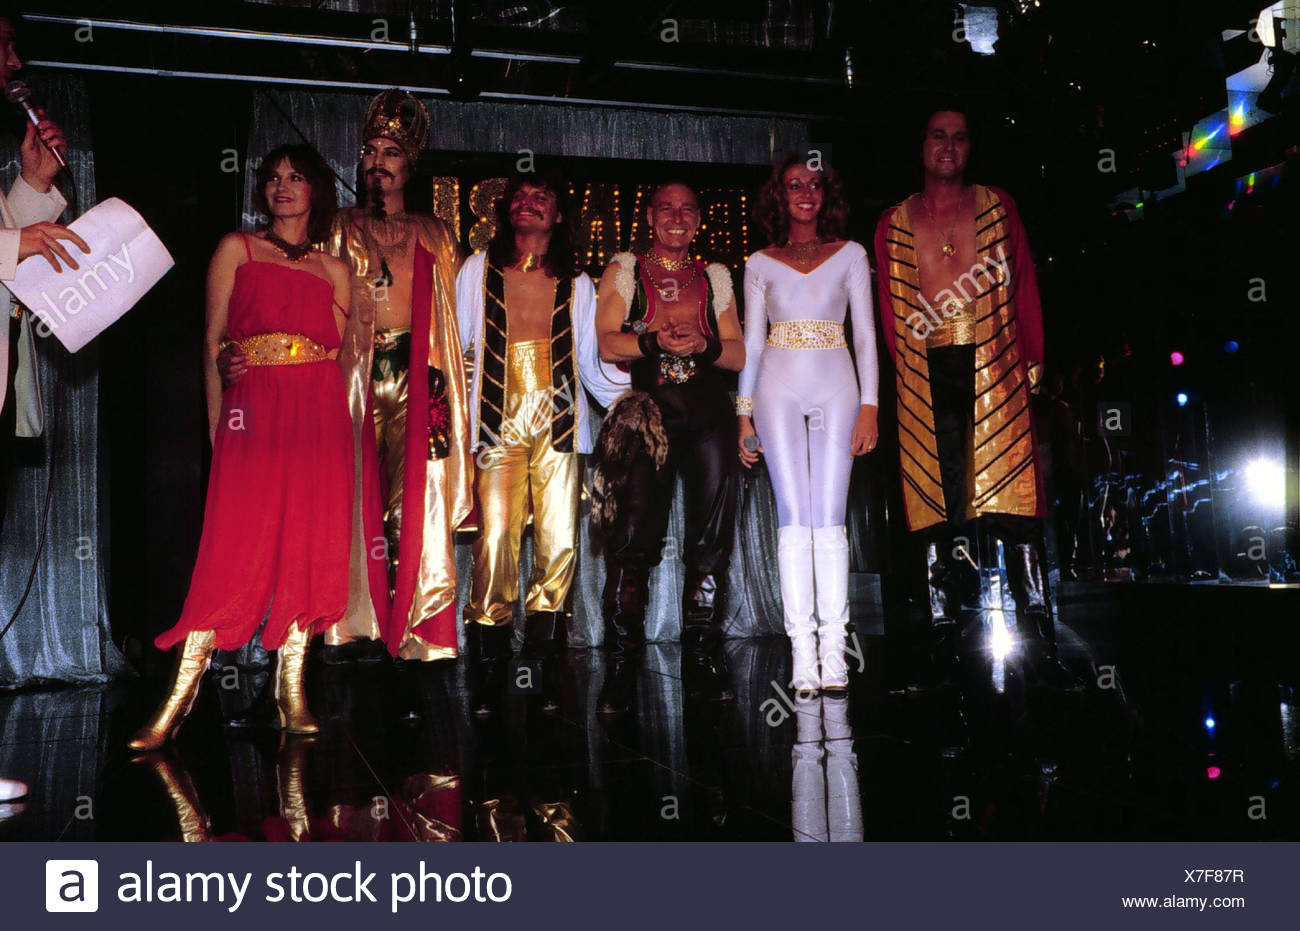 Genghis Khan (Dschinghis Khan), German pop group, group picture, on stage, wearing costumes, early 1980s, Leslie Mandoki, Henrie Stock Photo